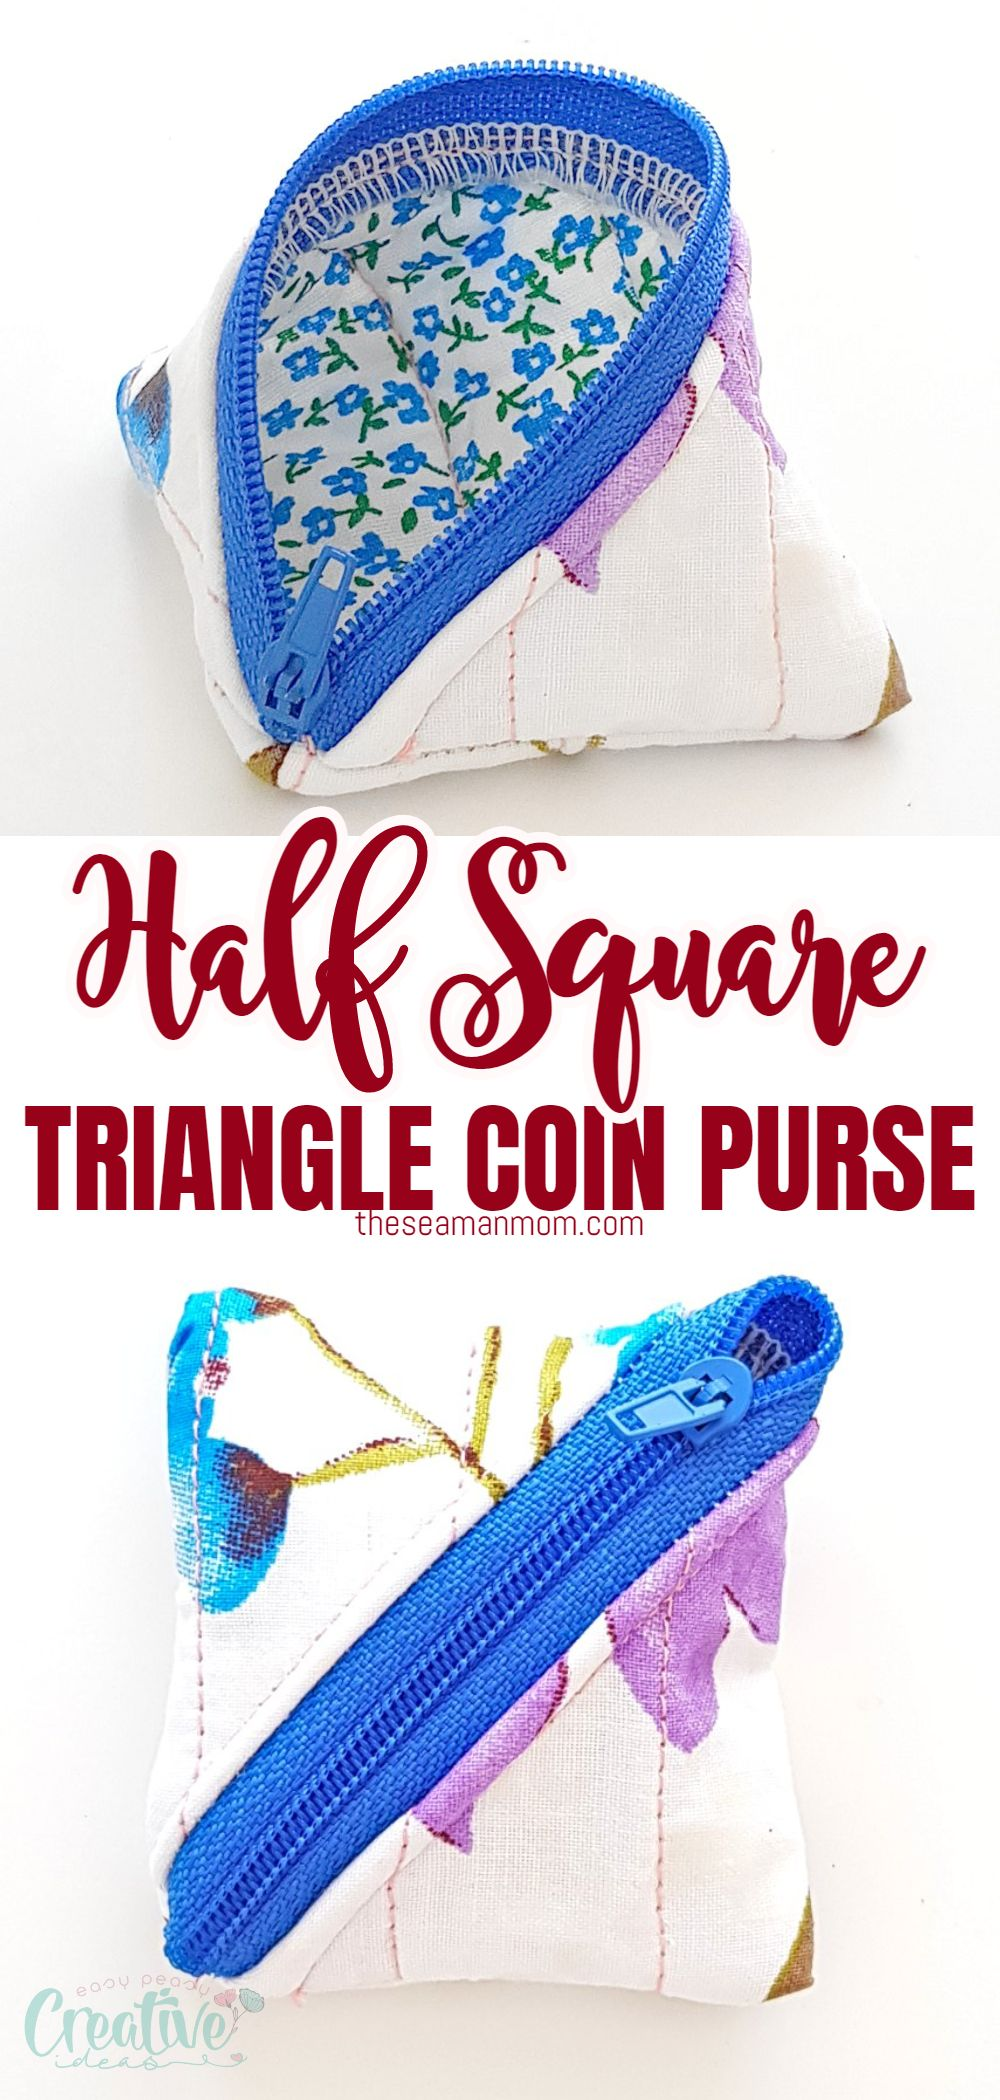 Can't seem to keep all your coins in one place or can't find some change when you need it? Here is a super easy tutorial for making a handy dandy half square triangle zipper coin purse in just about 30 minutes! via @petroneagu